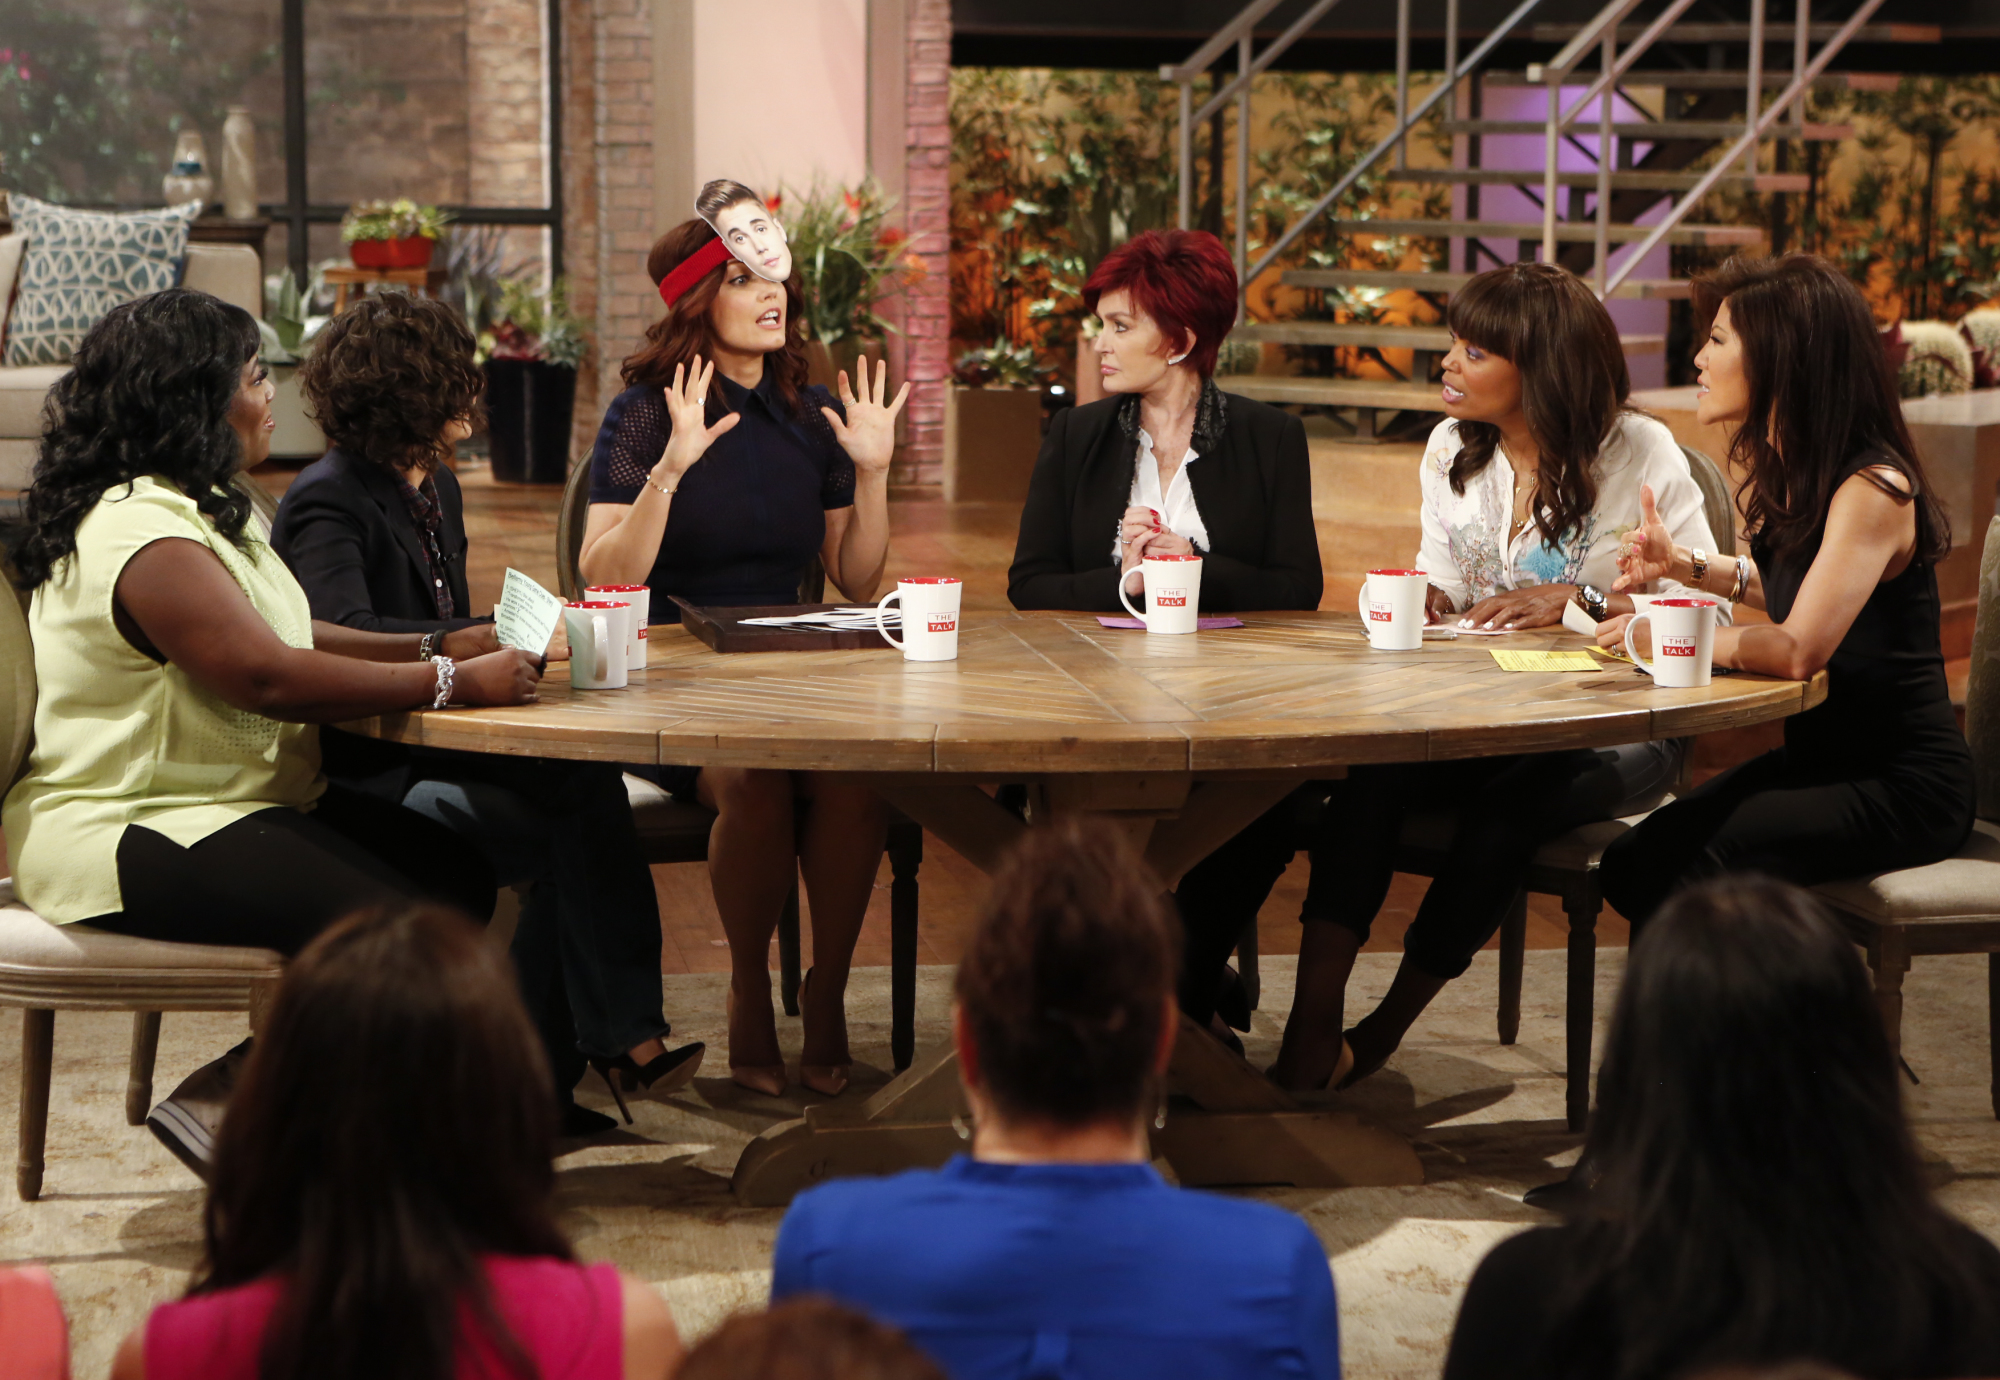 8. Hearing Bellamy Young's story about meeting the Obamas.